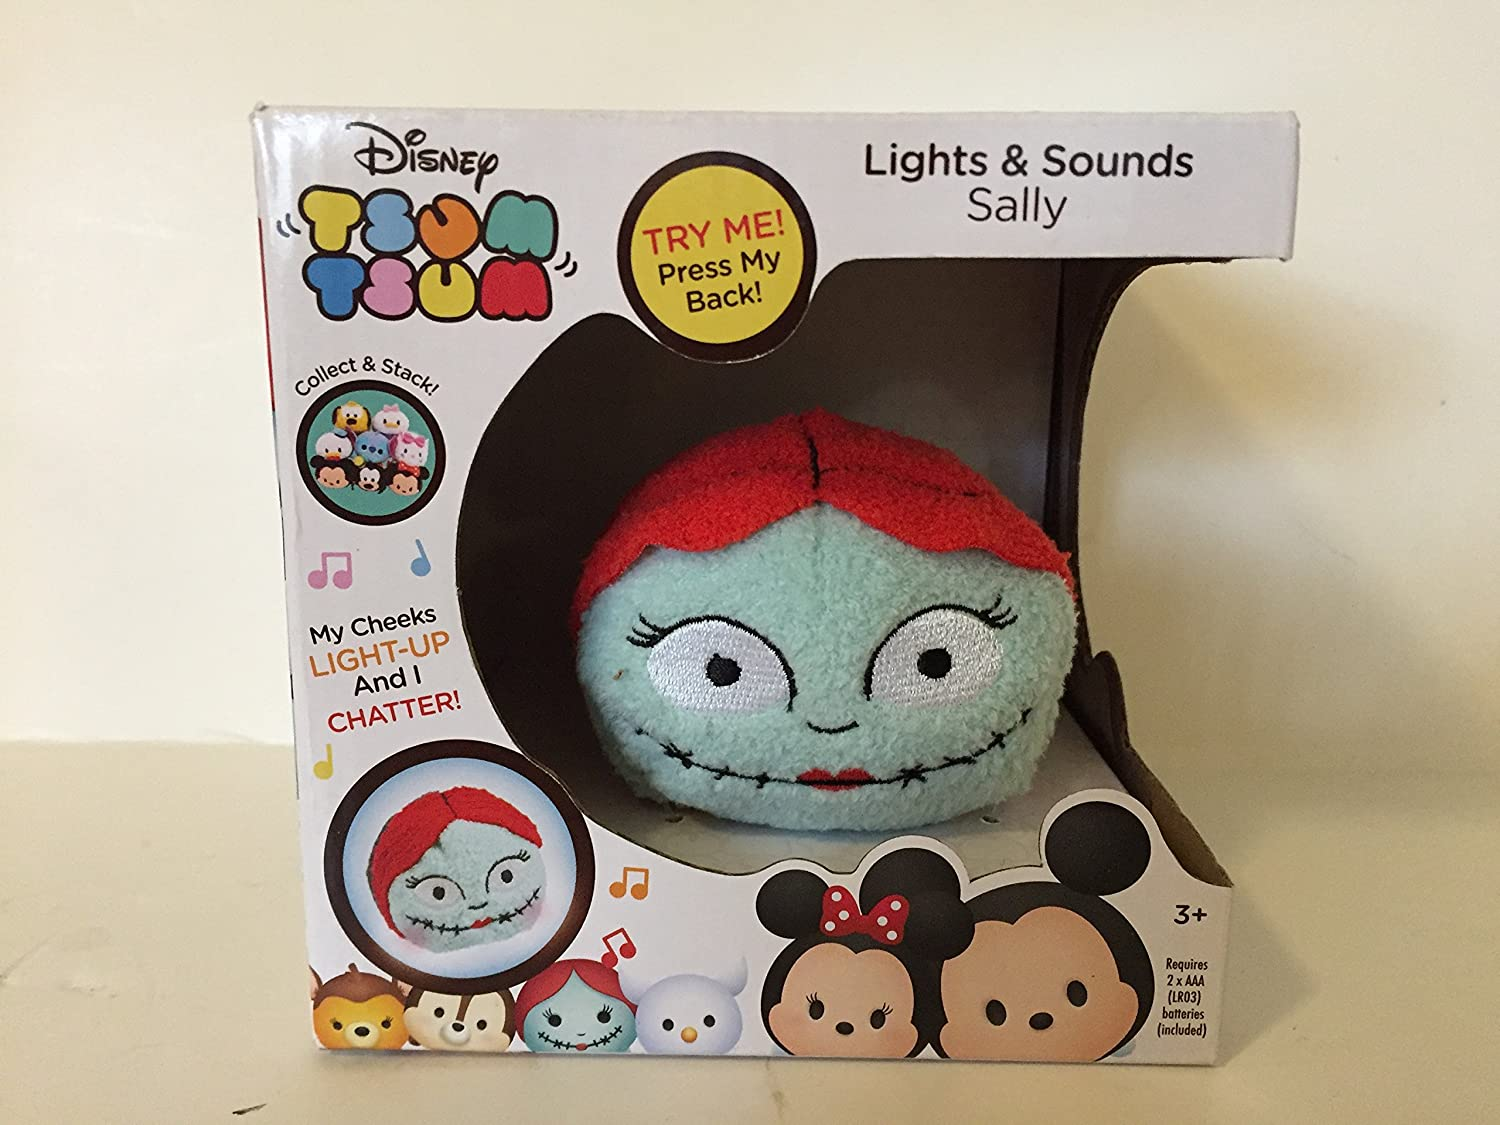 Amazon.com: Disney Tsum Tsum Lights & Sounds Sally Plush: Toys & Games